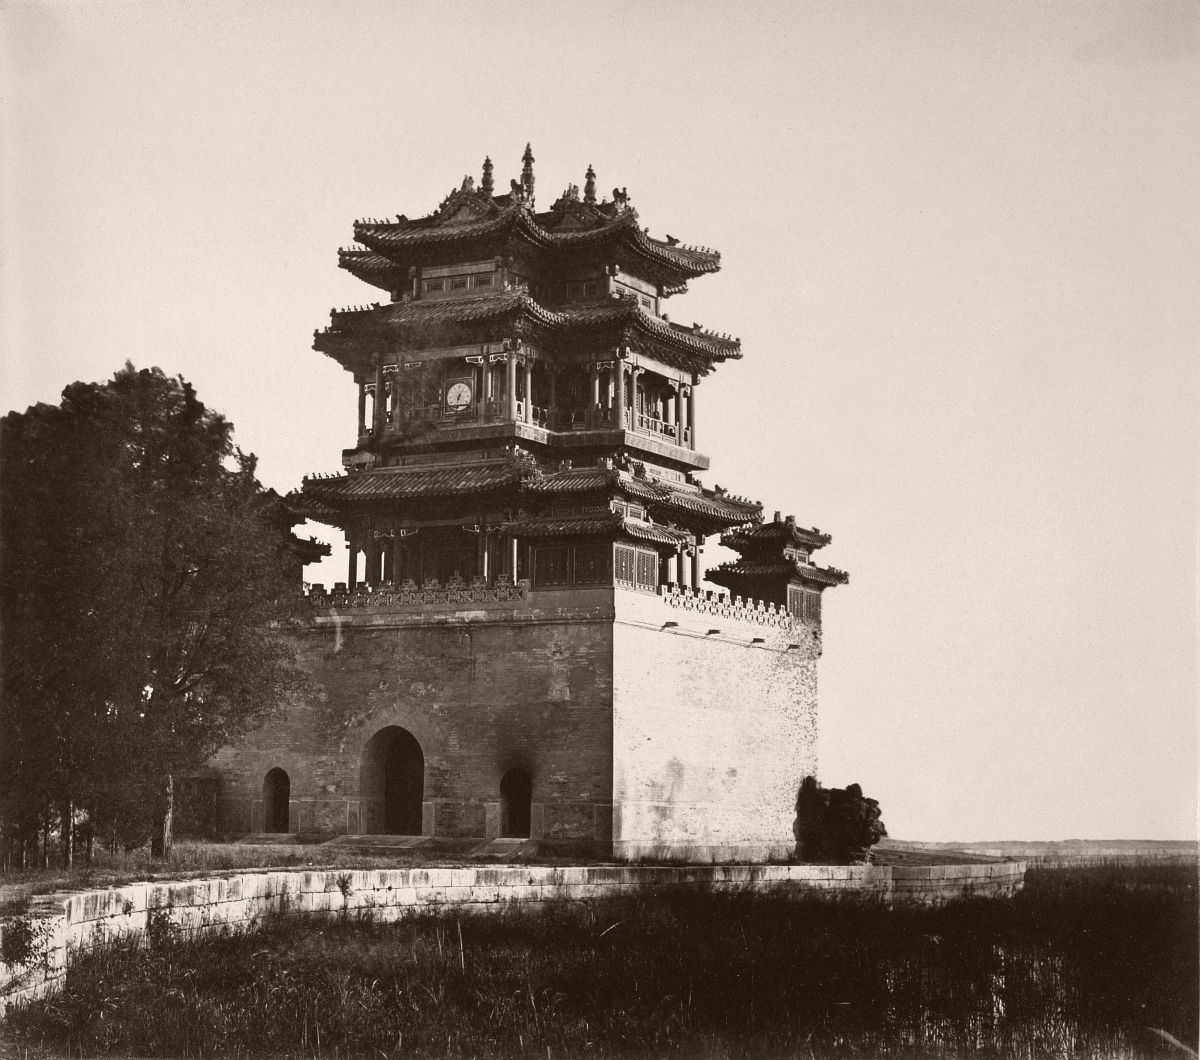 Wenchang Pavilion aka. Wenchang Tower (文昌阁) of the Summer Palace (Yihe Yuan), before being burnt down, October 1860